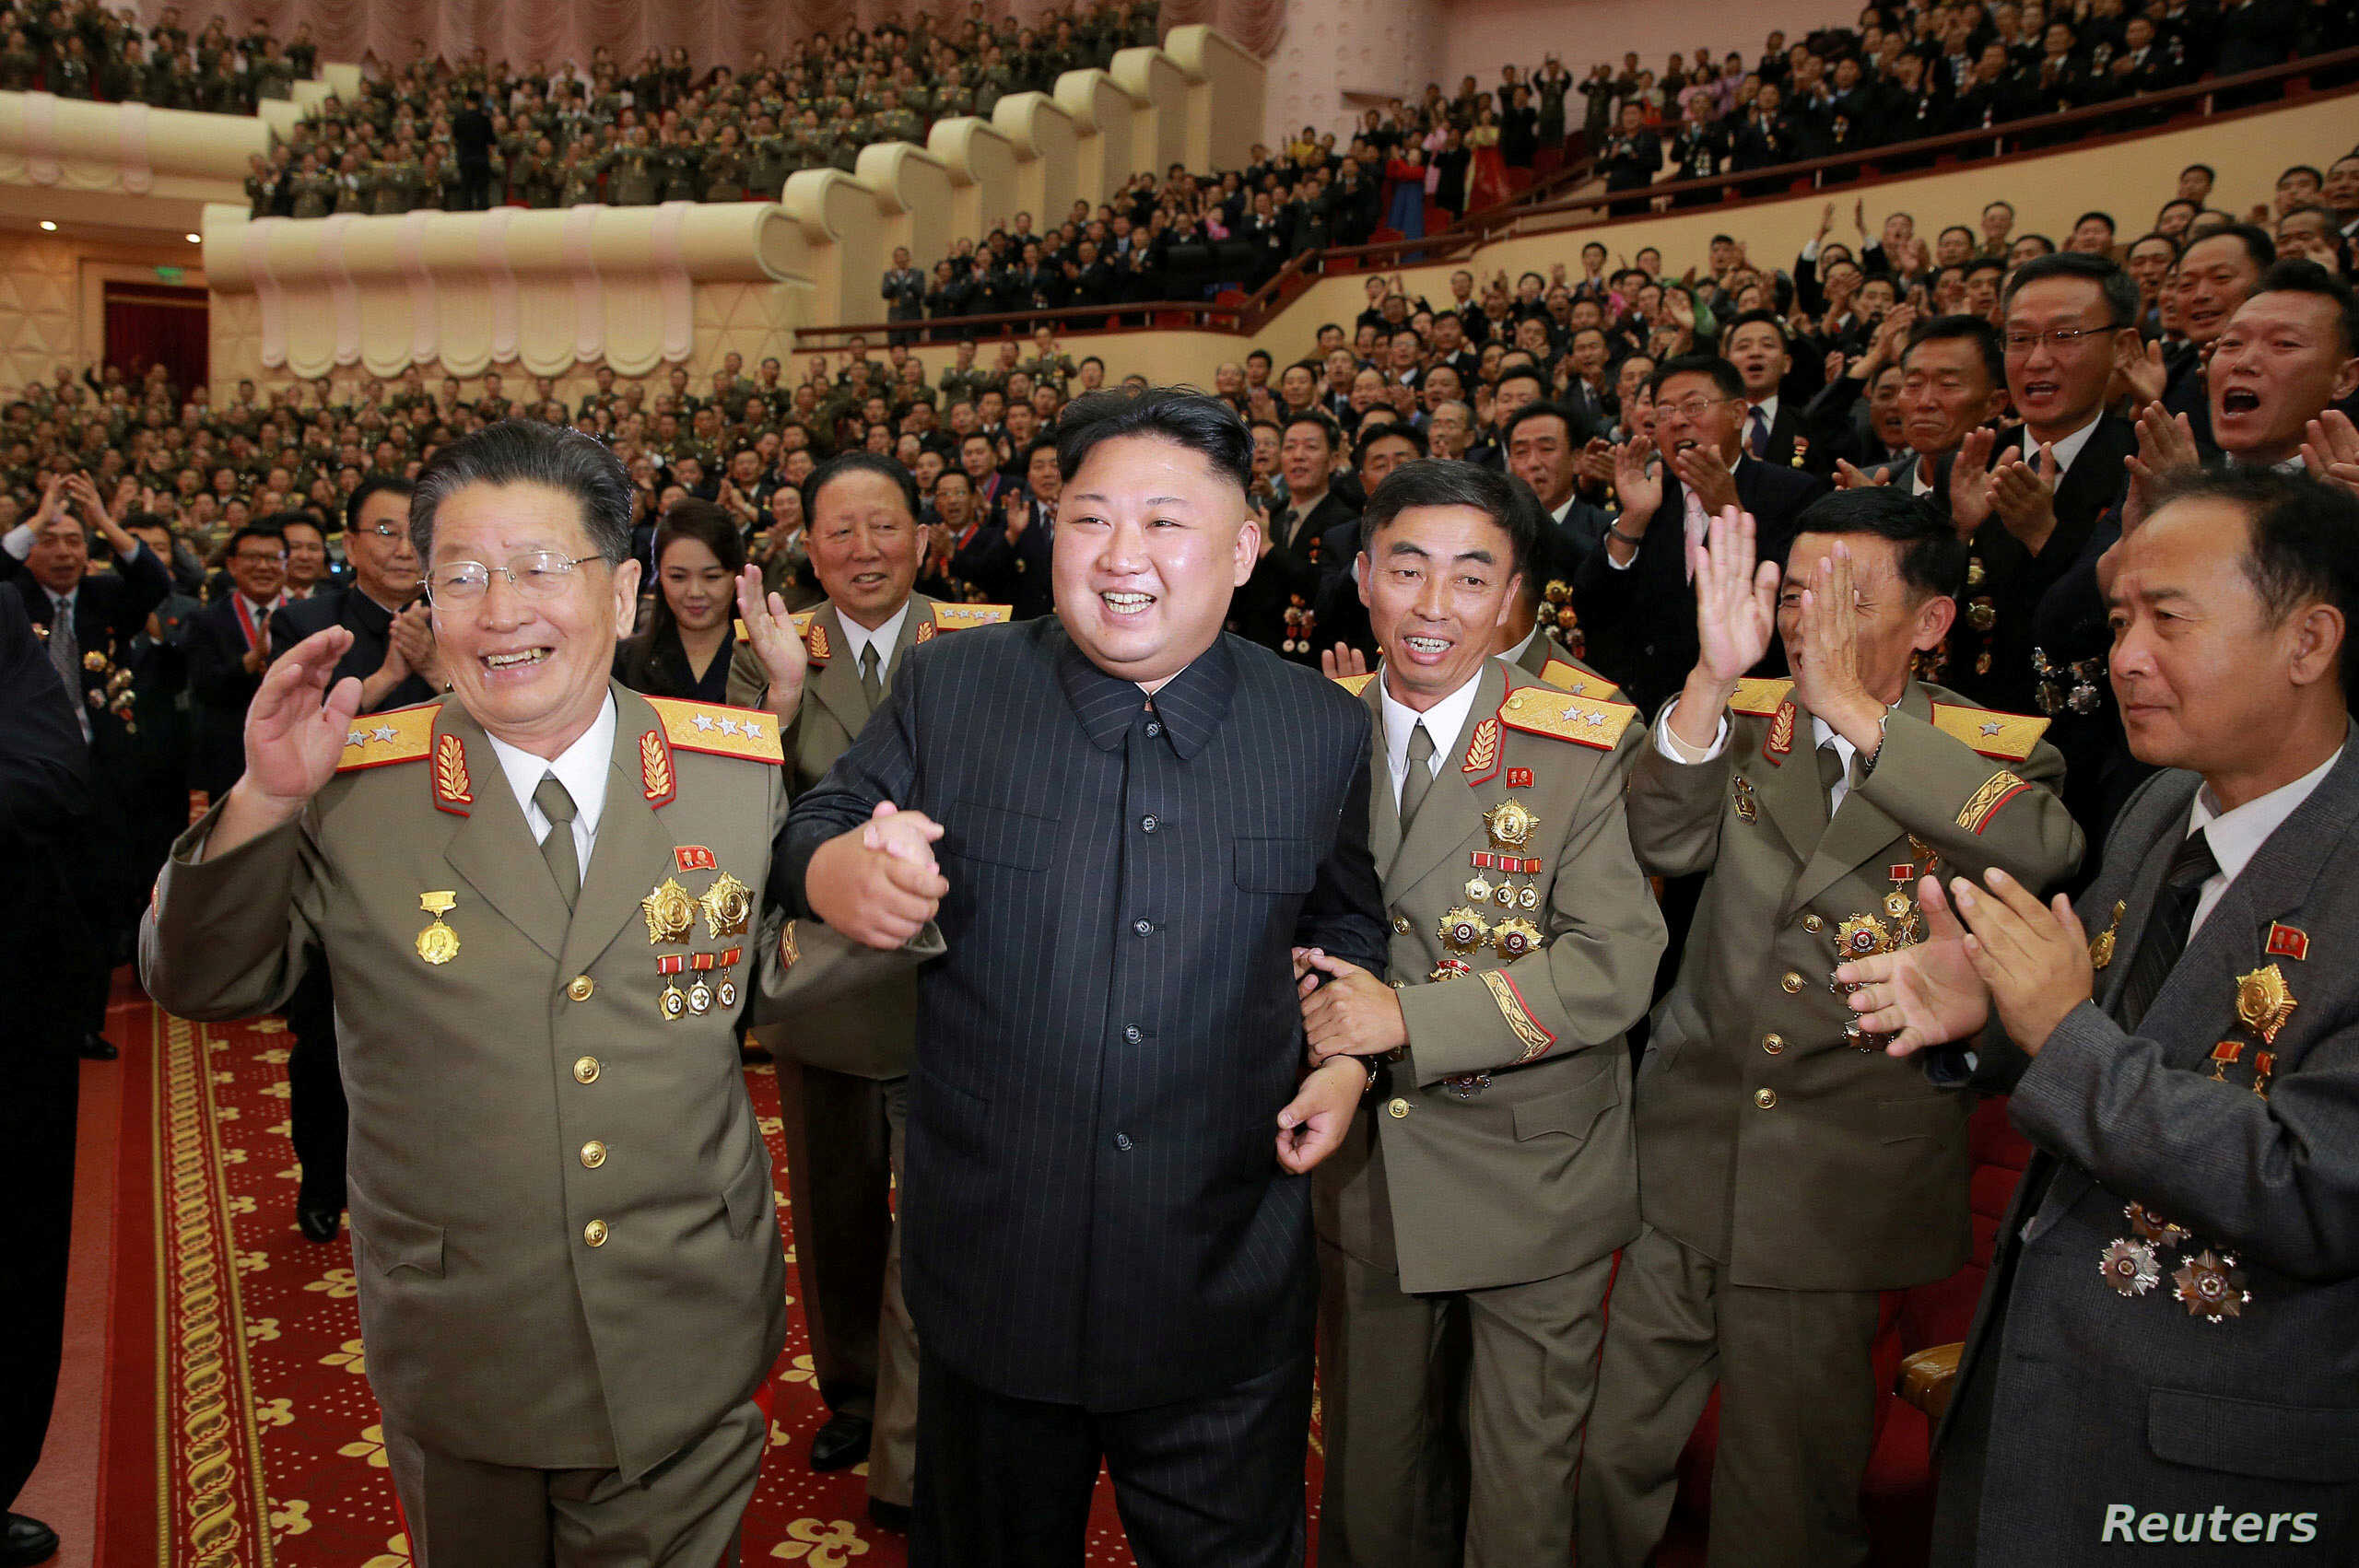 North Korean leader Kim Jong Un reacts during a celebration for nuclear scientists and engineers who contributed to a hydrogen bomb test, in this undated photo released by North Korea's Korean Central News Agency  in Pyongyang on Sept. 10, 2017.